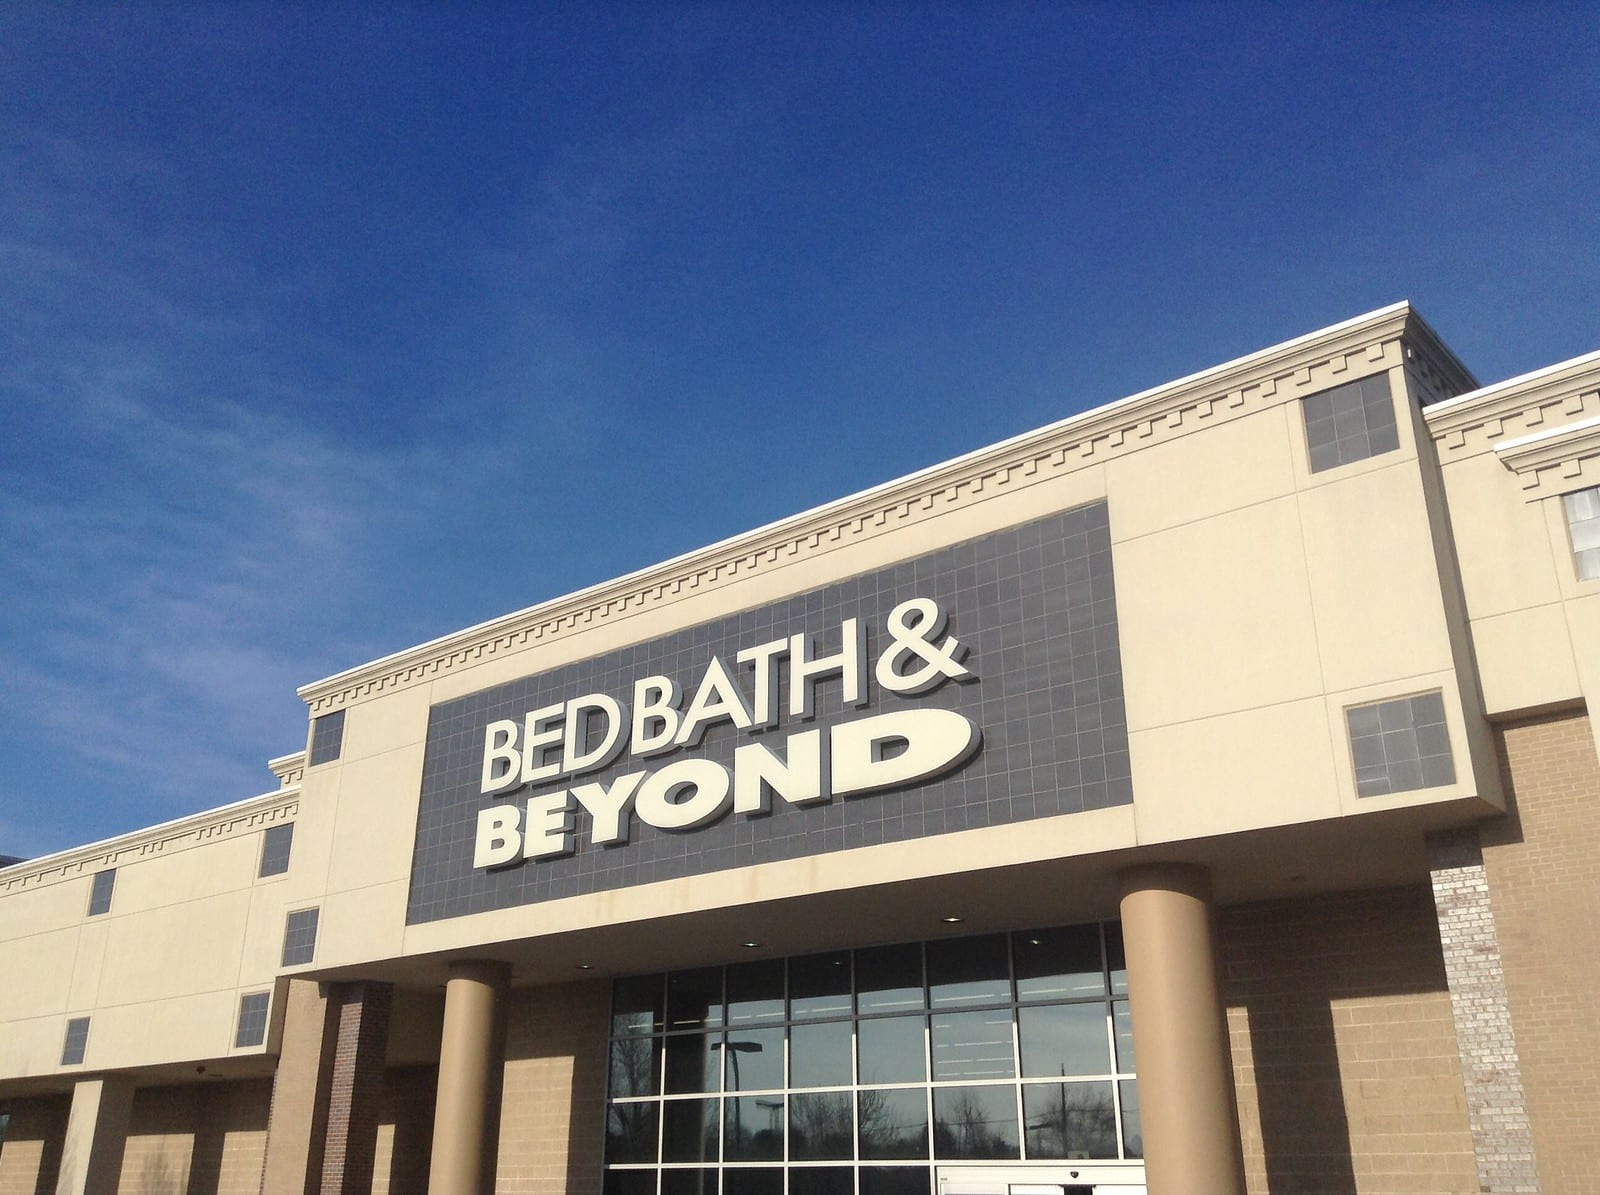 A Bed Bath & Beyond storefront, backed by a vivid blue sky.